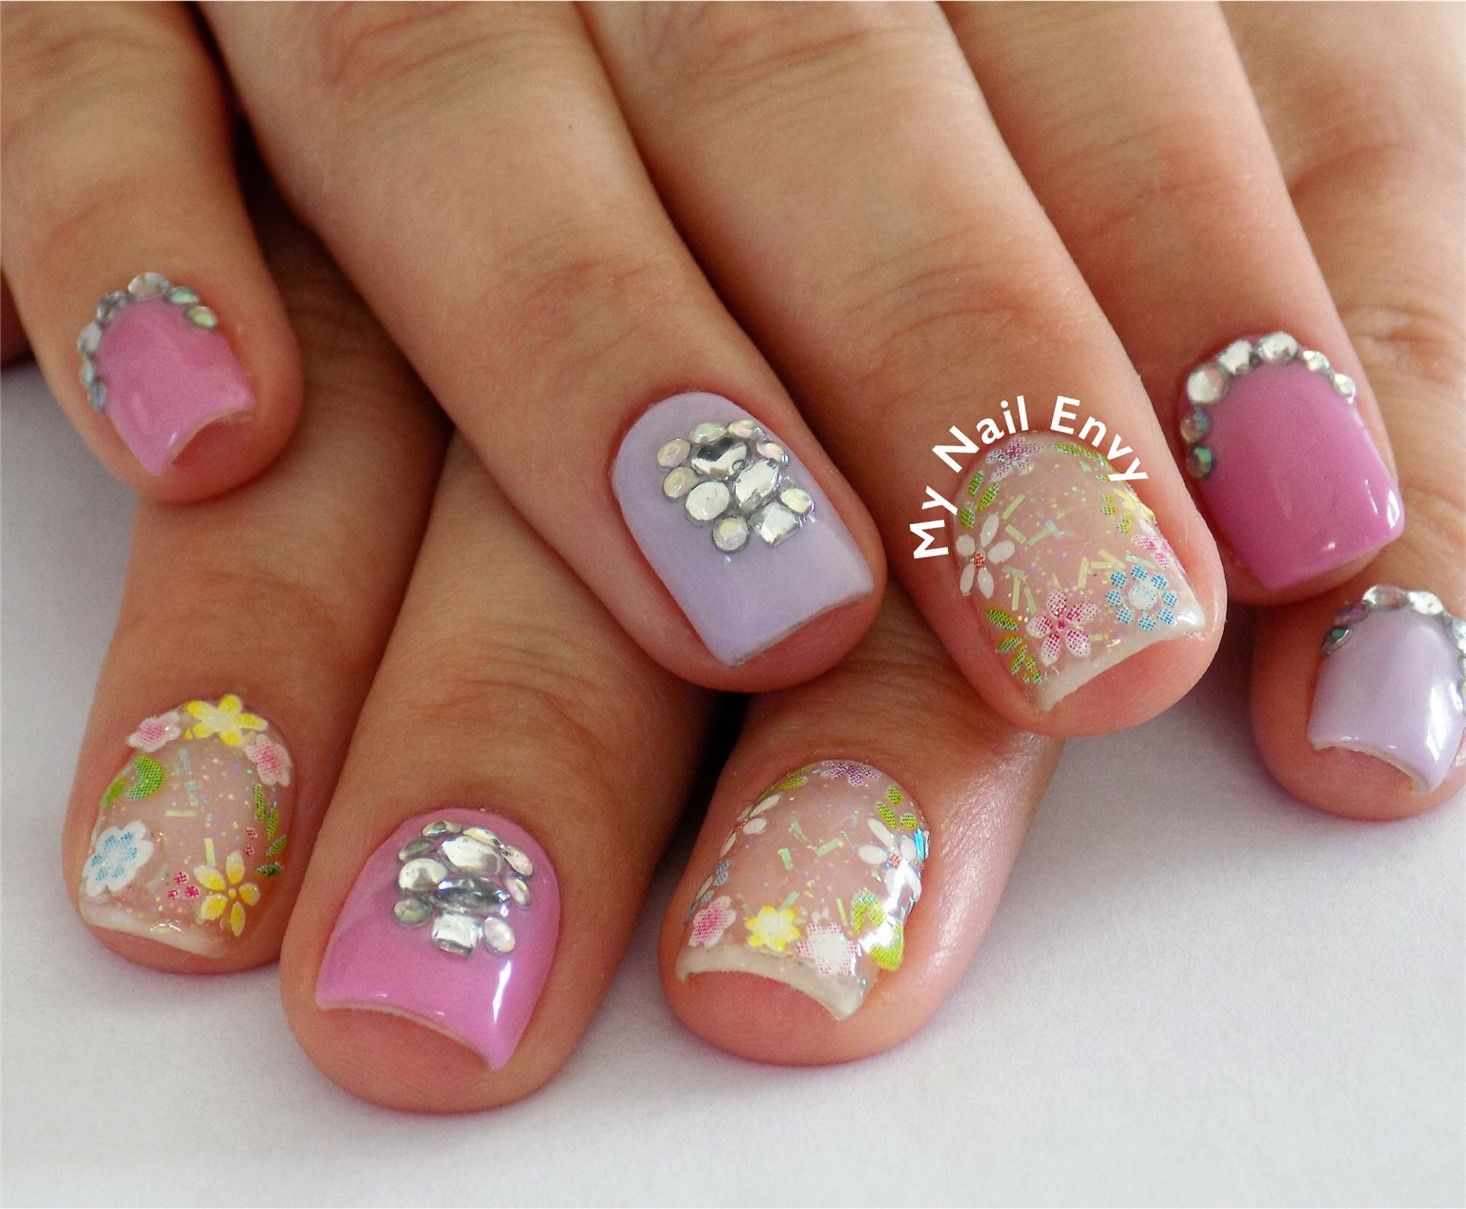 Mothers Day Nails – My Nail Envy acrylic nails, ez flow, floral ...